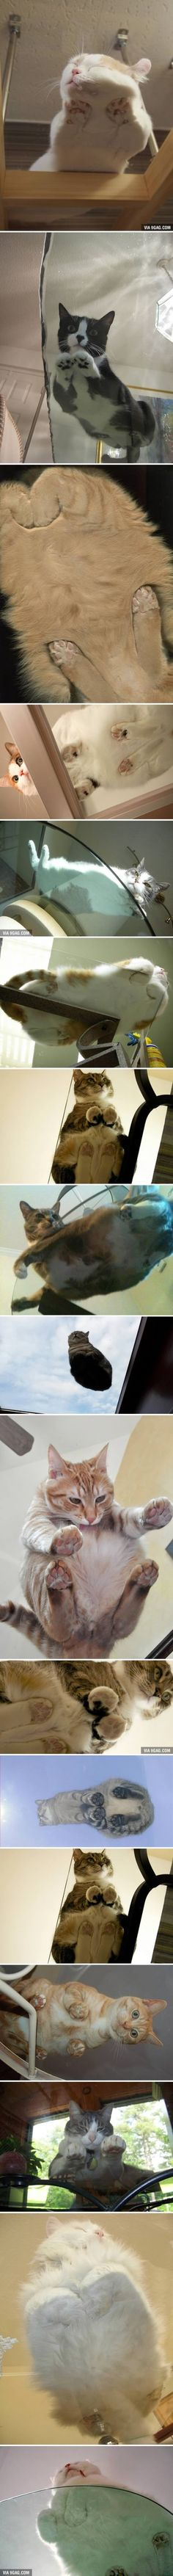 17 Pictures Of Cats On Glass = adorable! :3